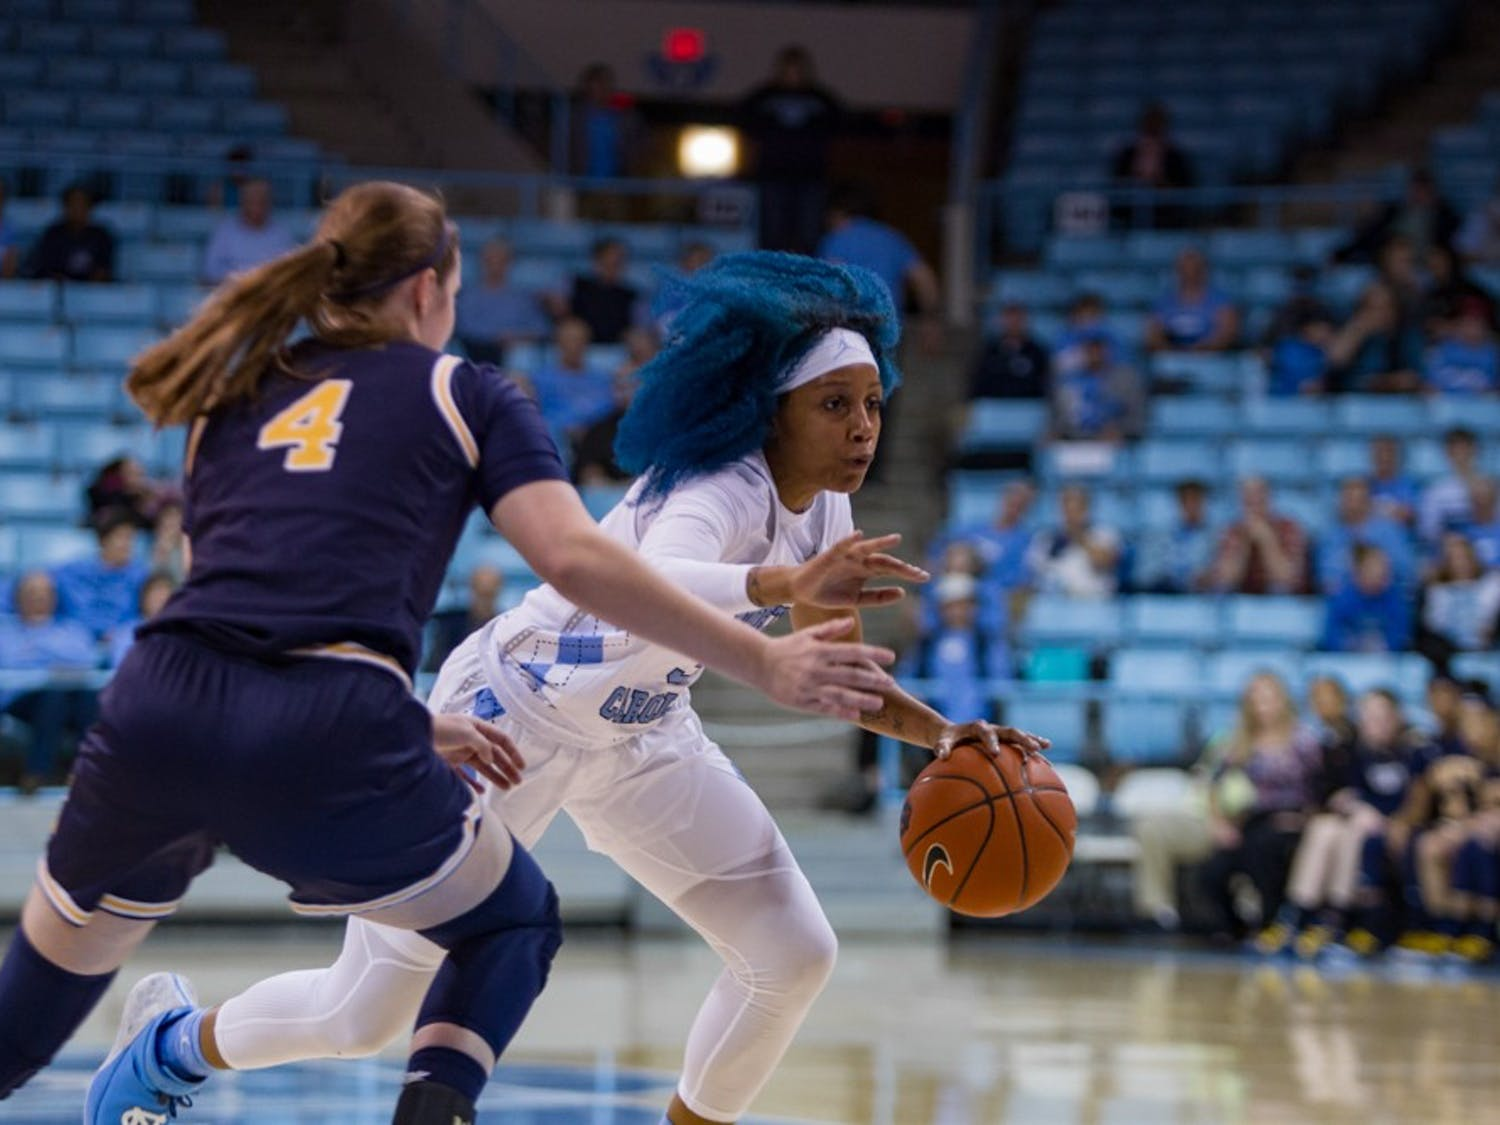 Senior guard Madinah Muhammad (3) dodges around Navy player in the women's basketball game against Navy in the Carmichael Arena on Monday, Nov. 11, 2019. UNC won 80-40.